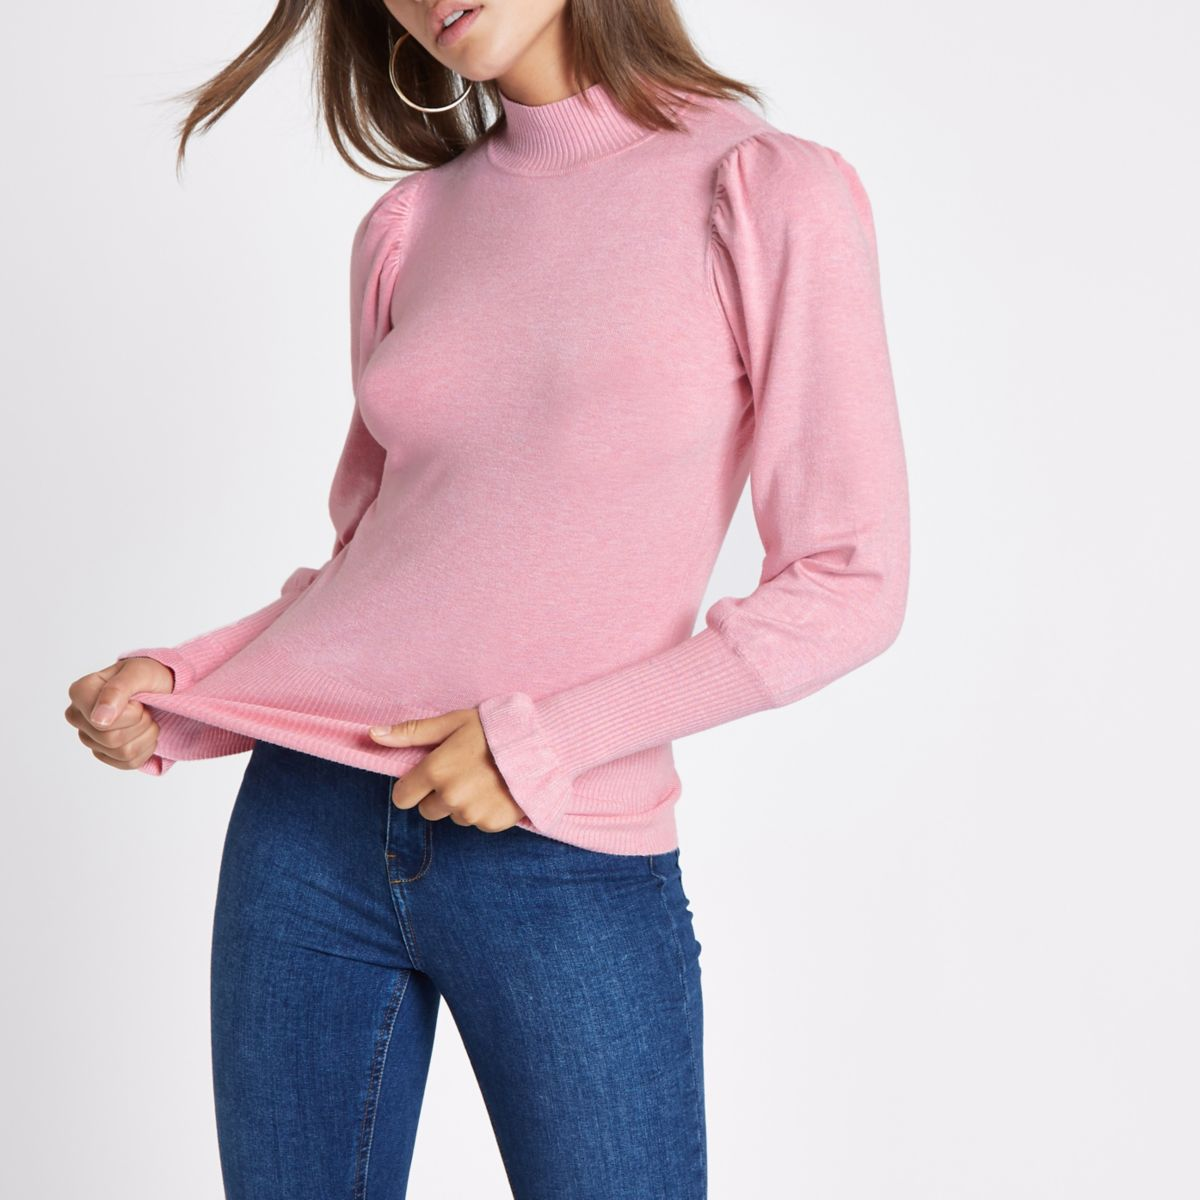 Pink turtle neck long sleeve sweater